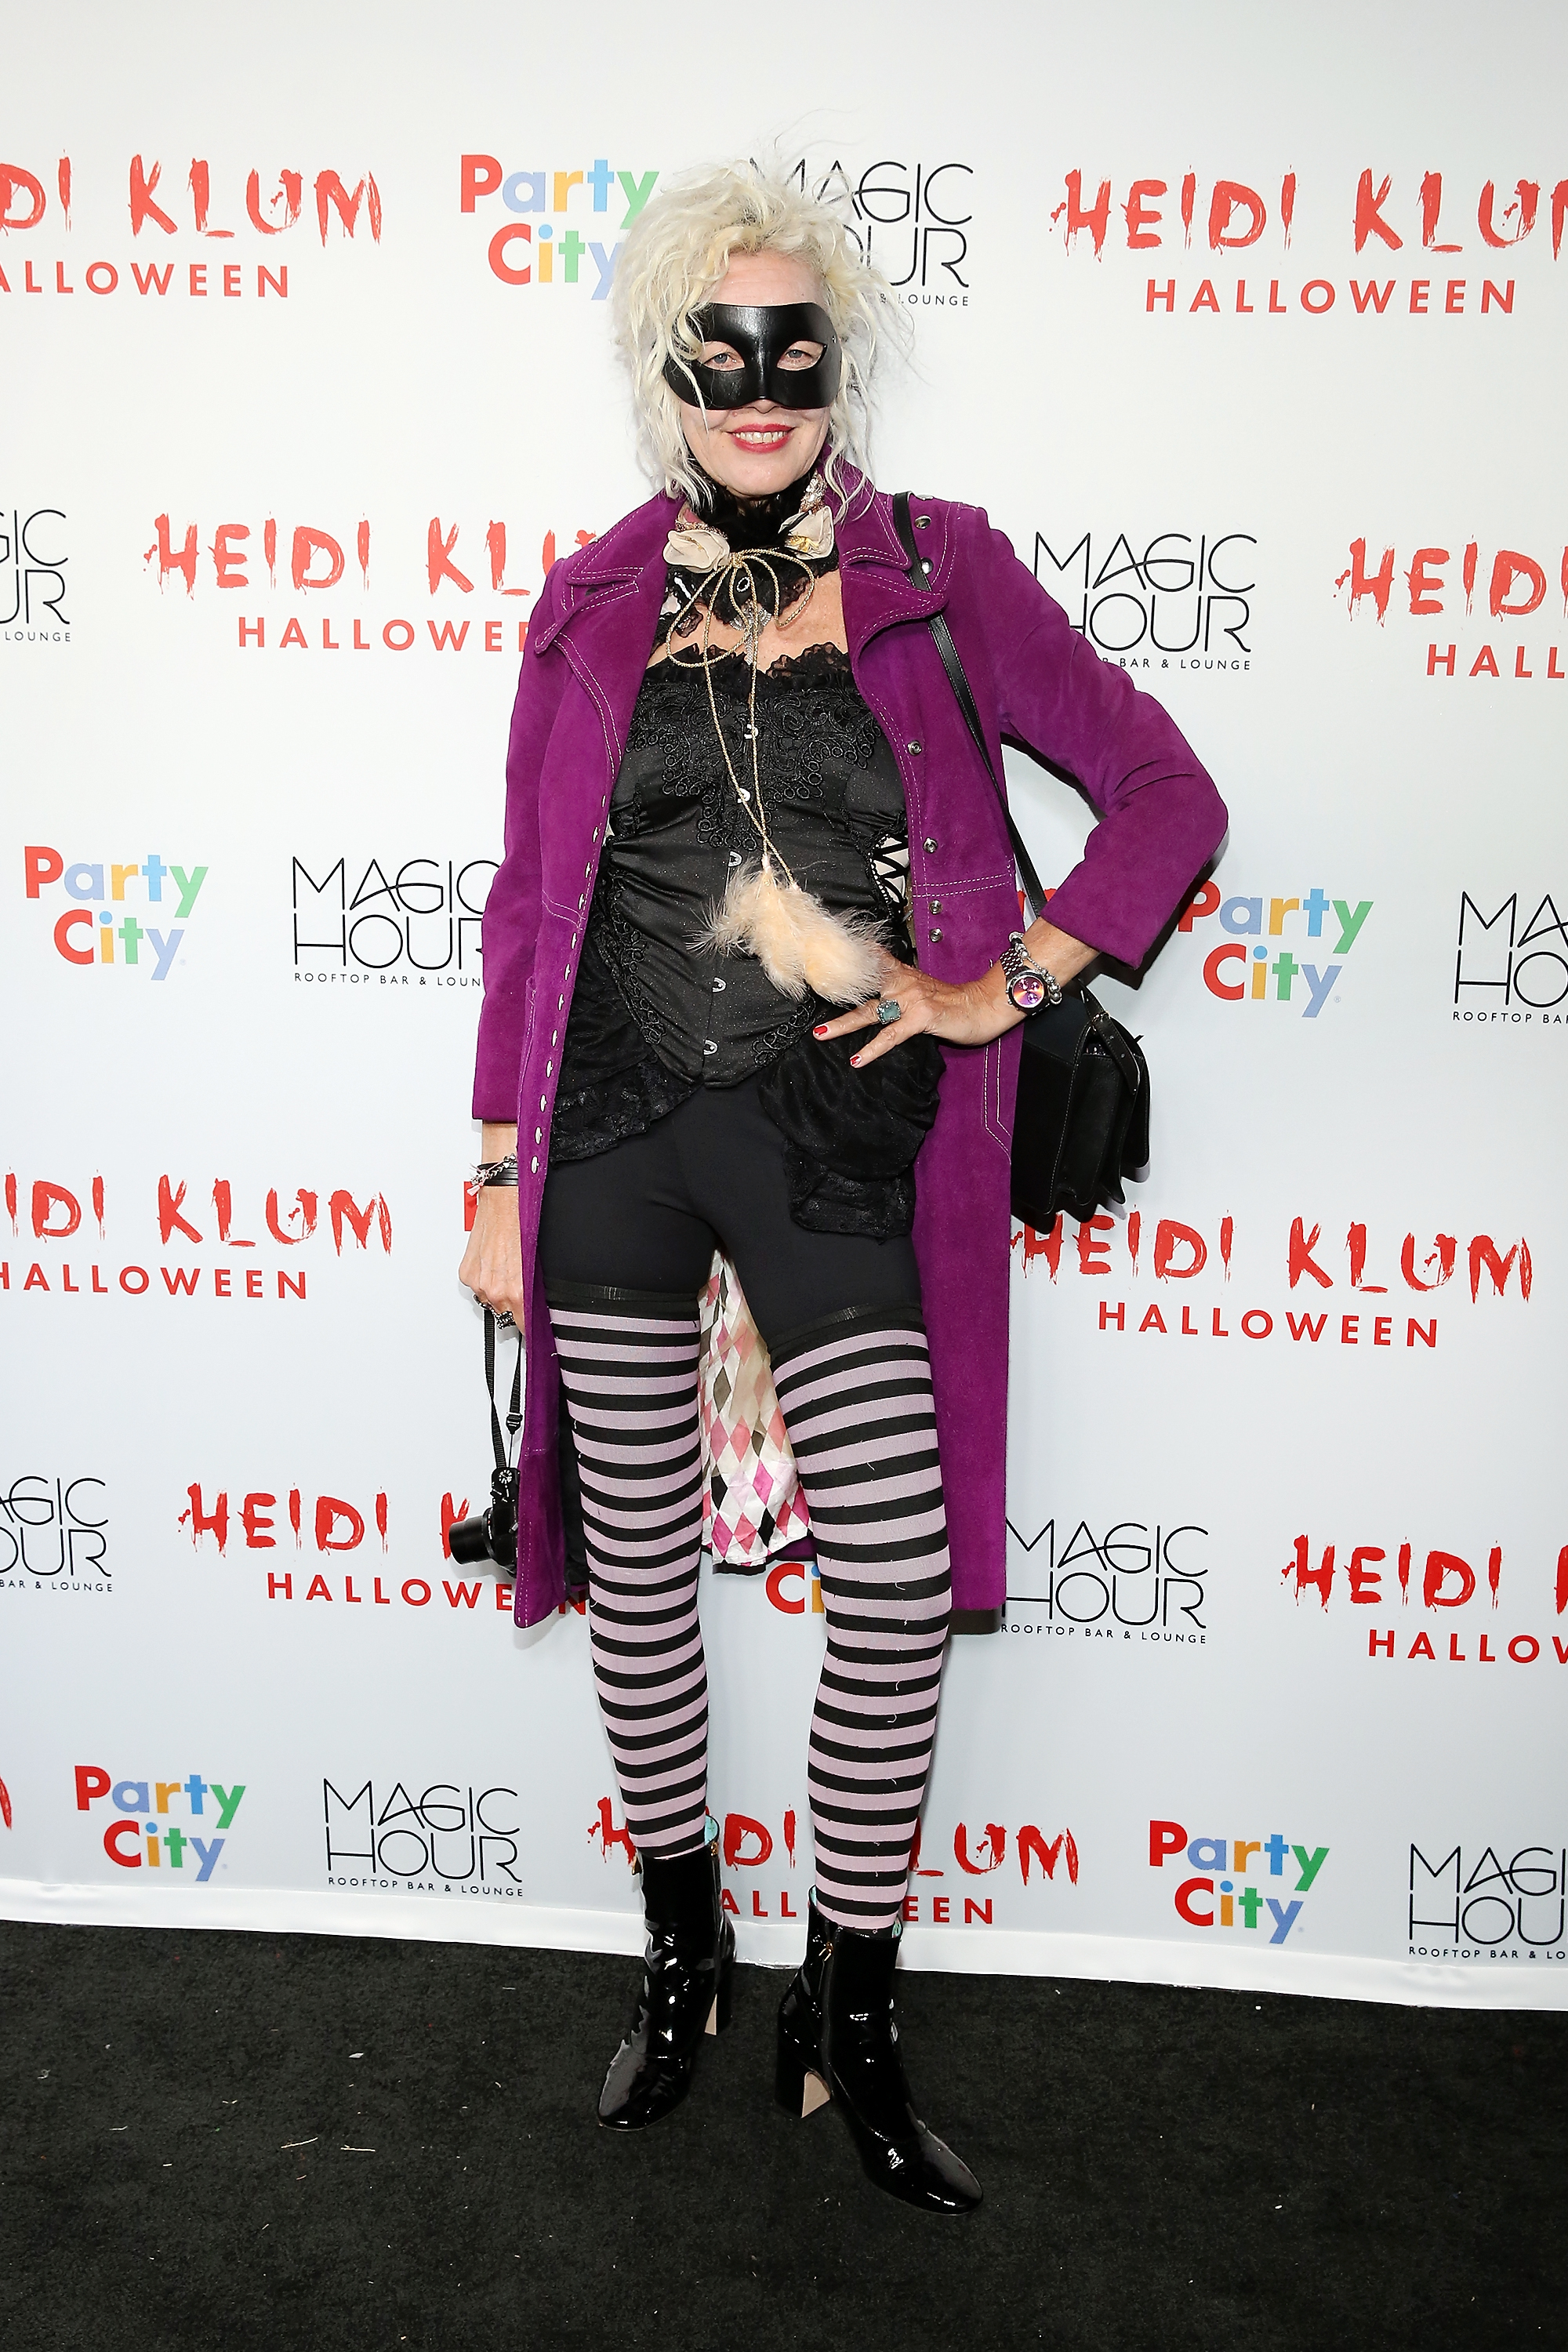 Photographer Ellen von Unwerth went for a witchy costume for Heidi's Halloween party.